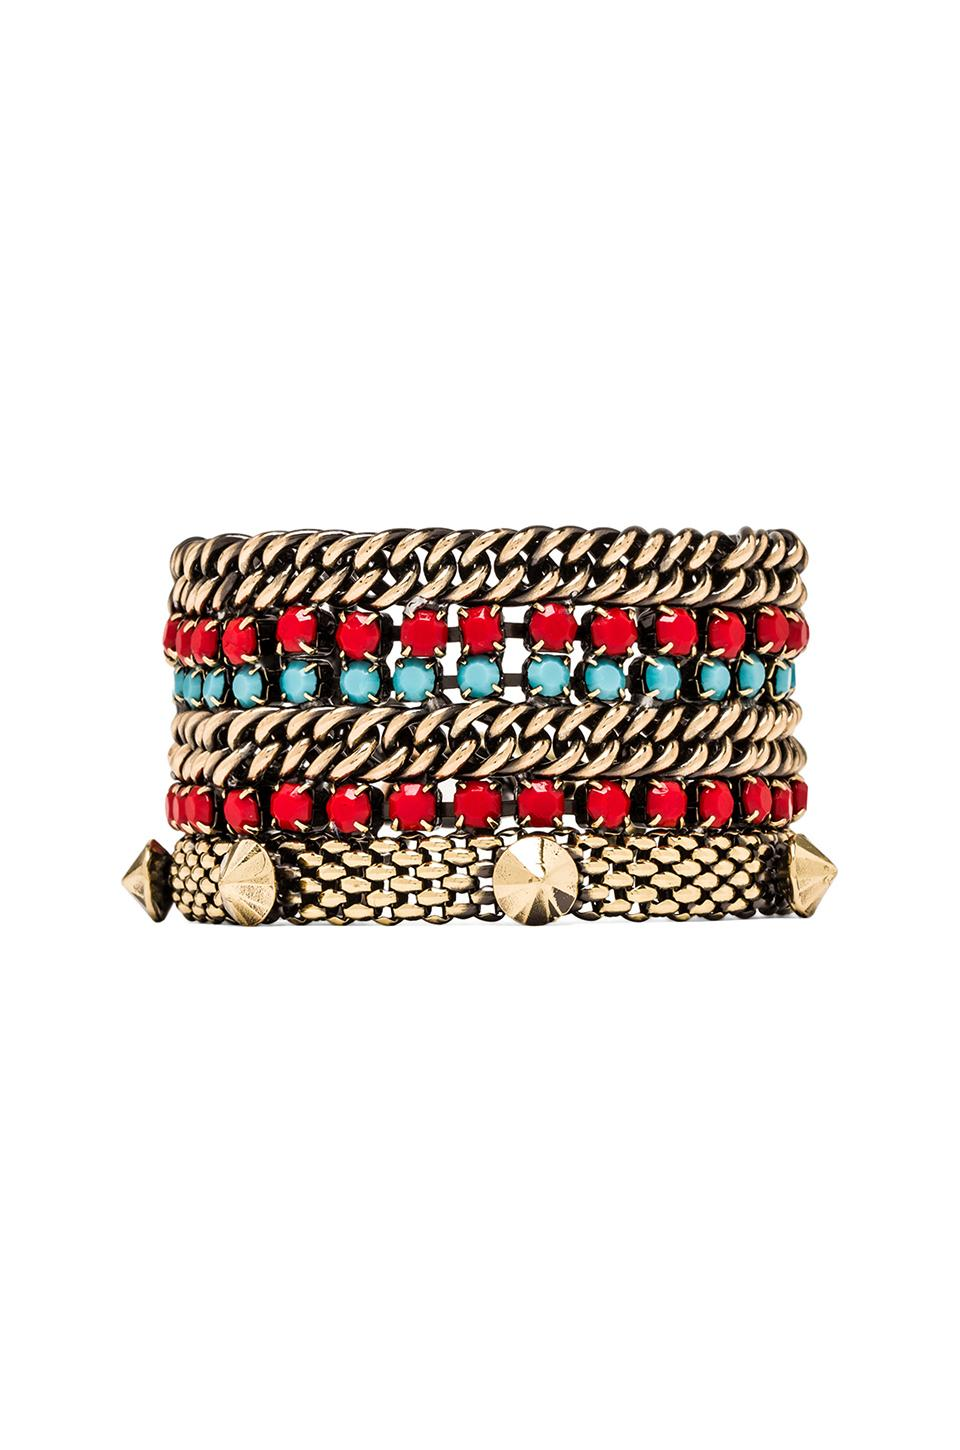 Iosselliani Tribal Studded Bracelet in Coral